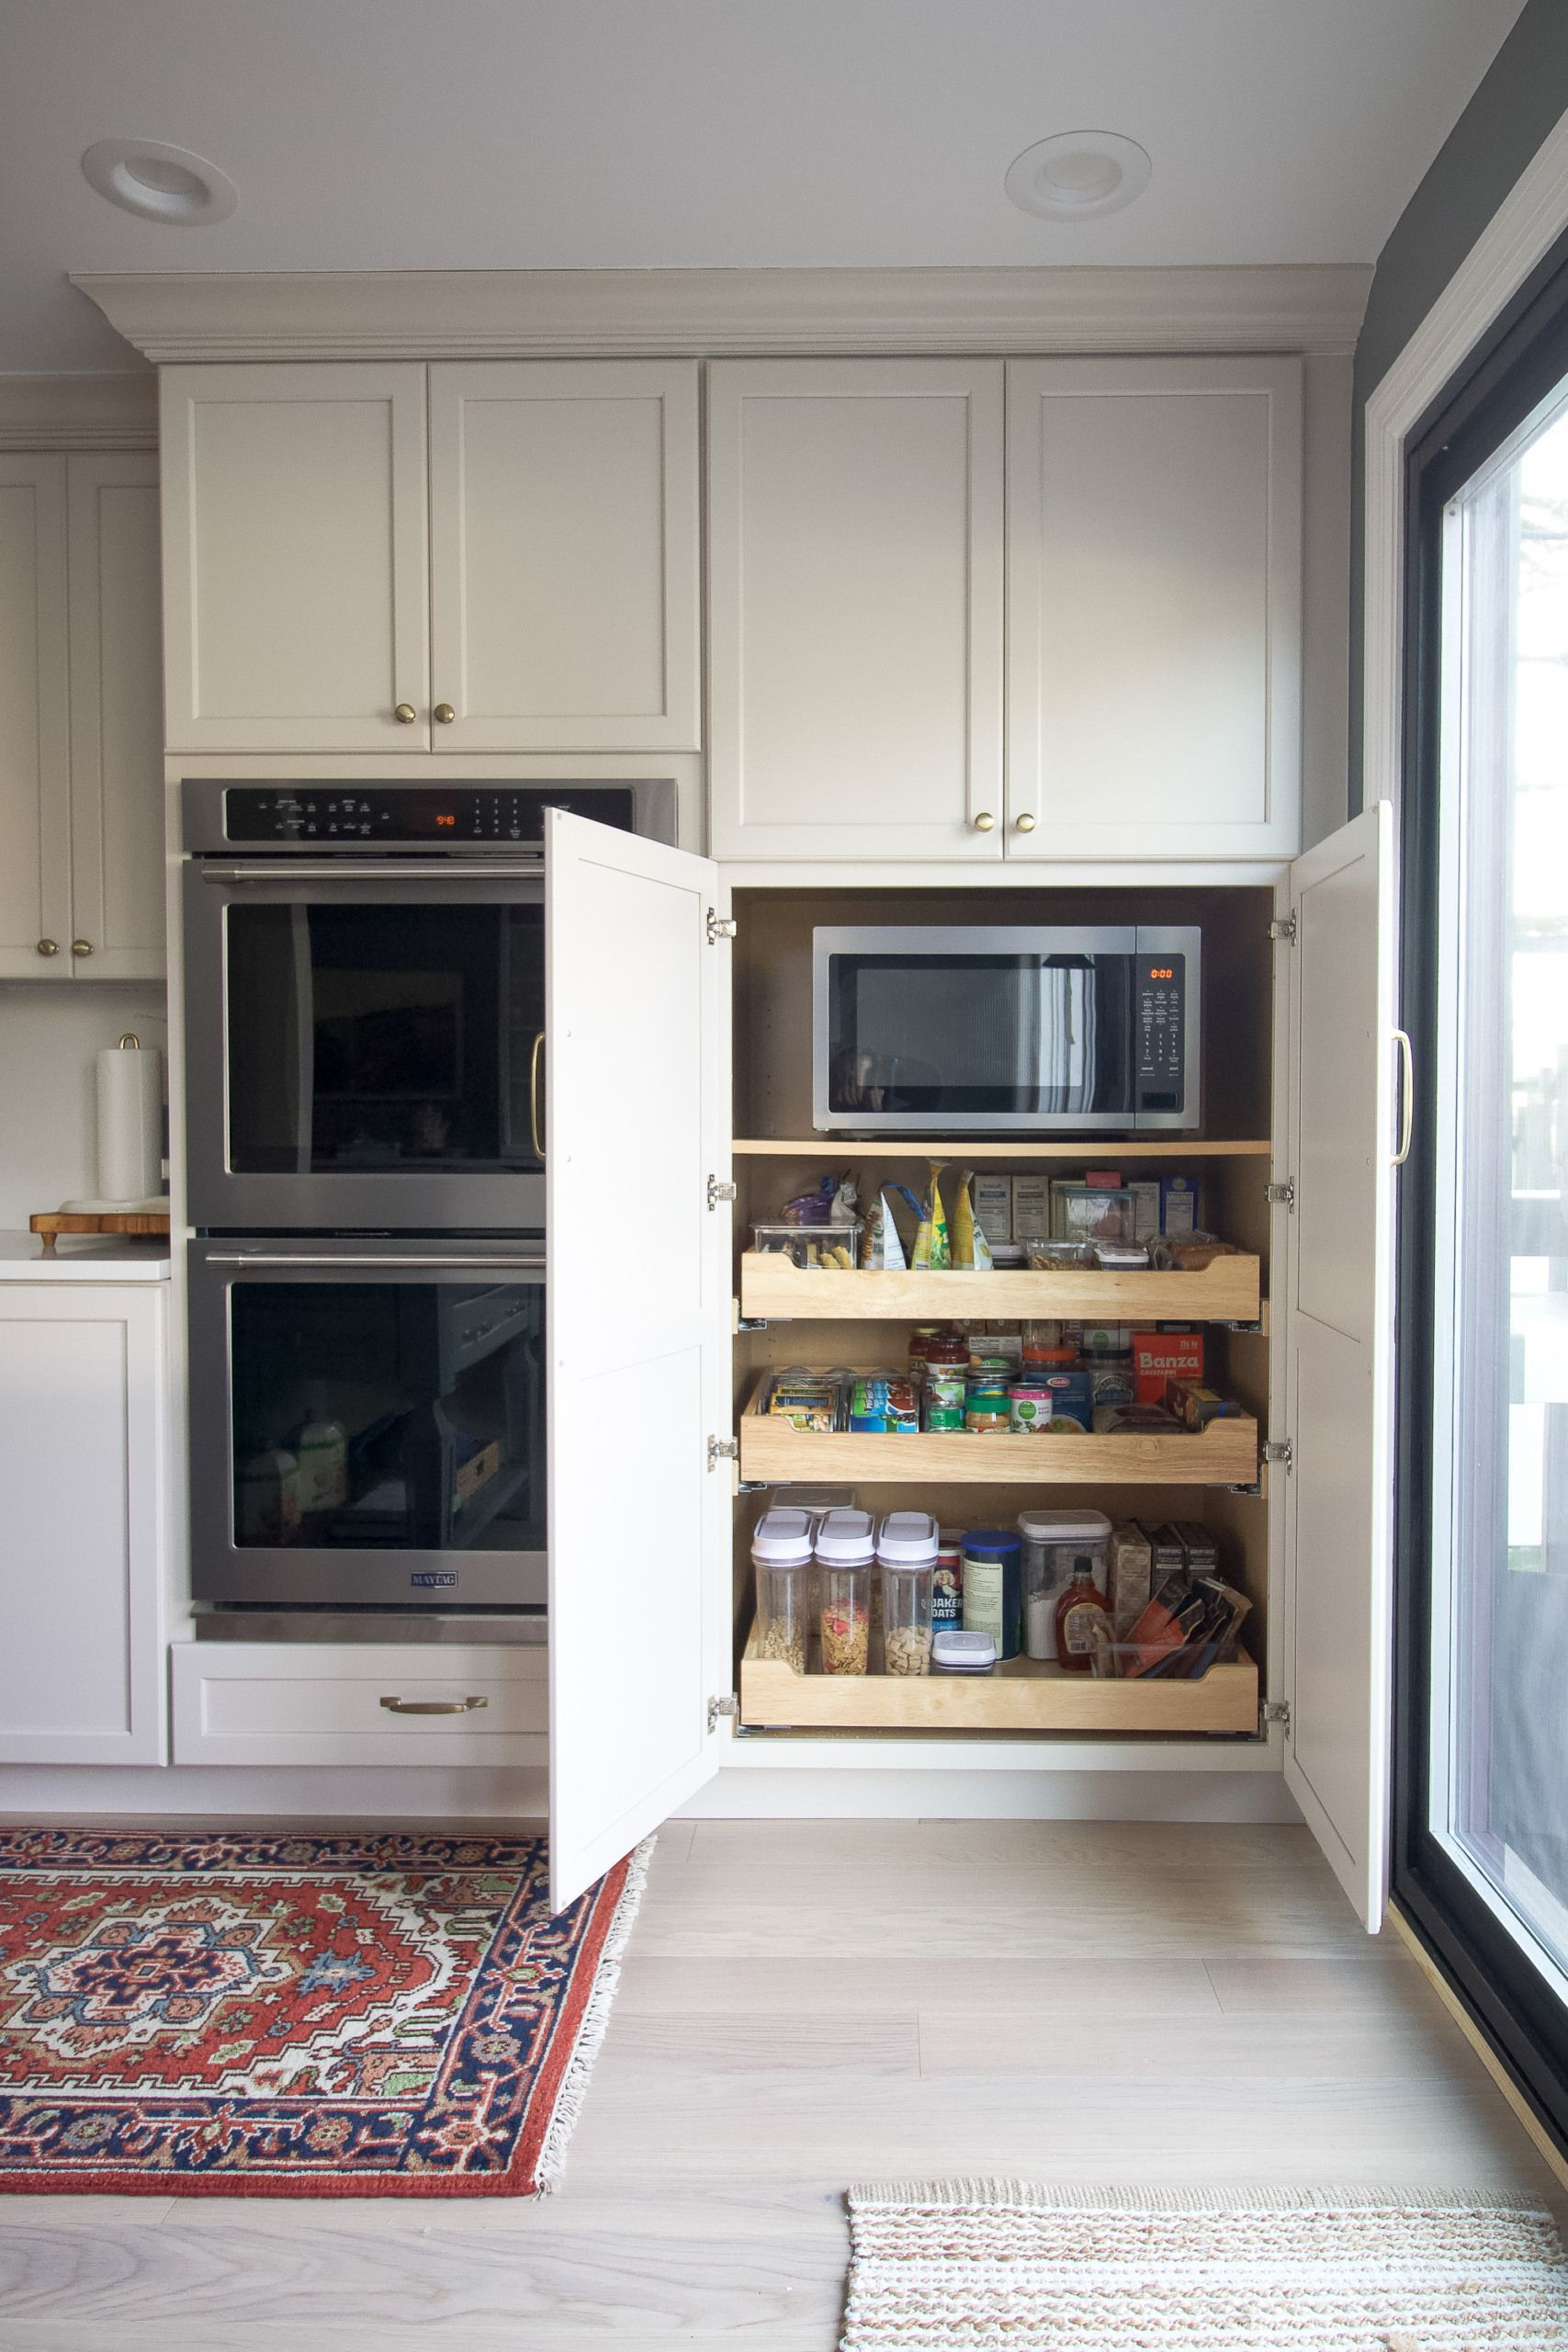 How to Organize Pantry Drawers